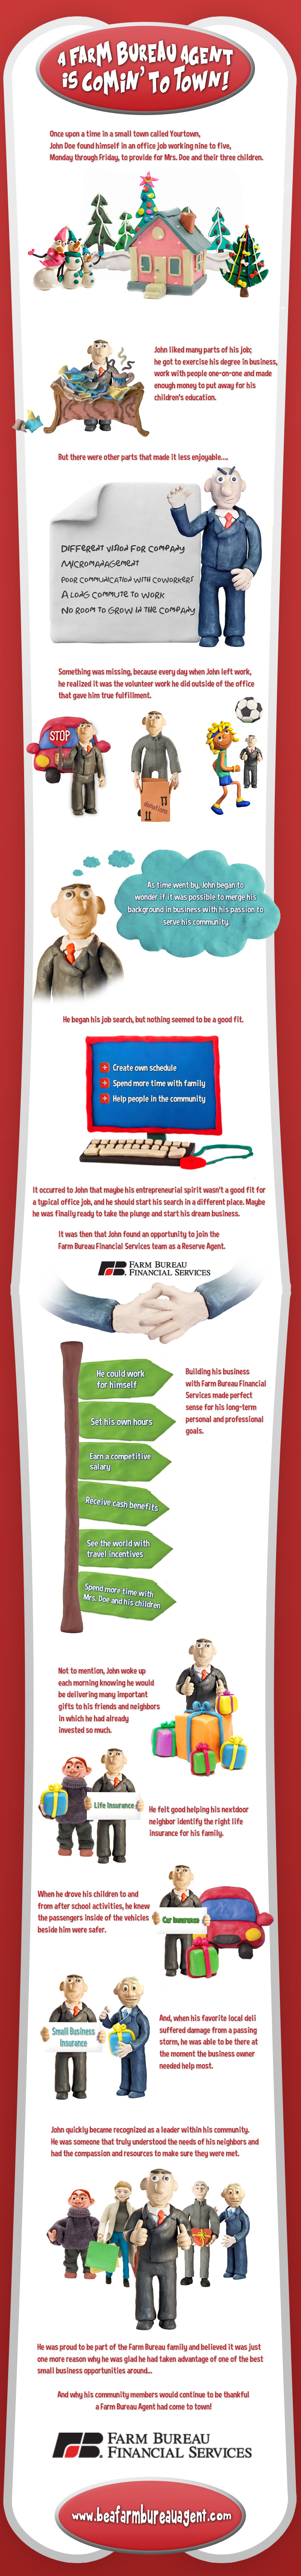 A Farm Bureau Agent is Comin' to Town! (Infographic)